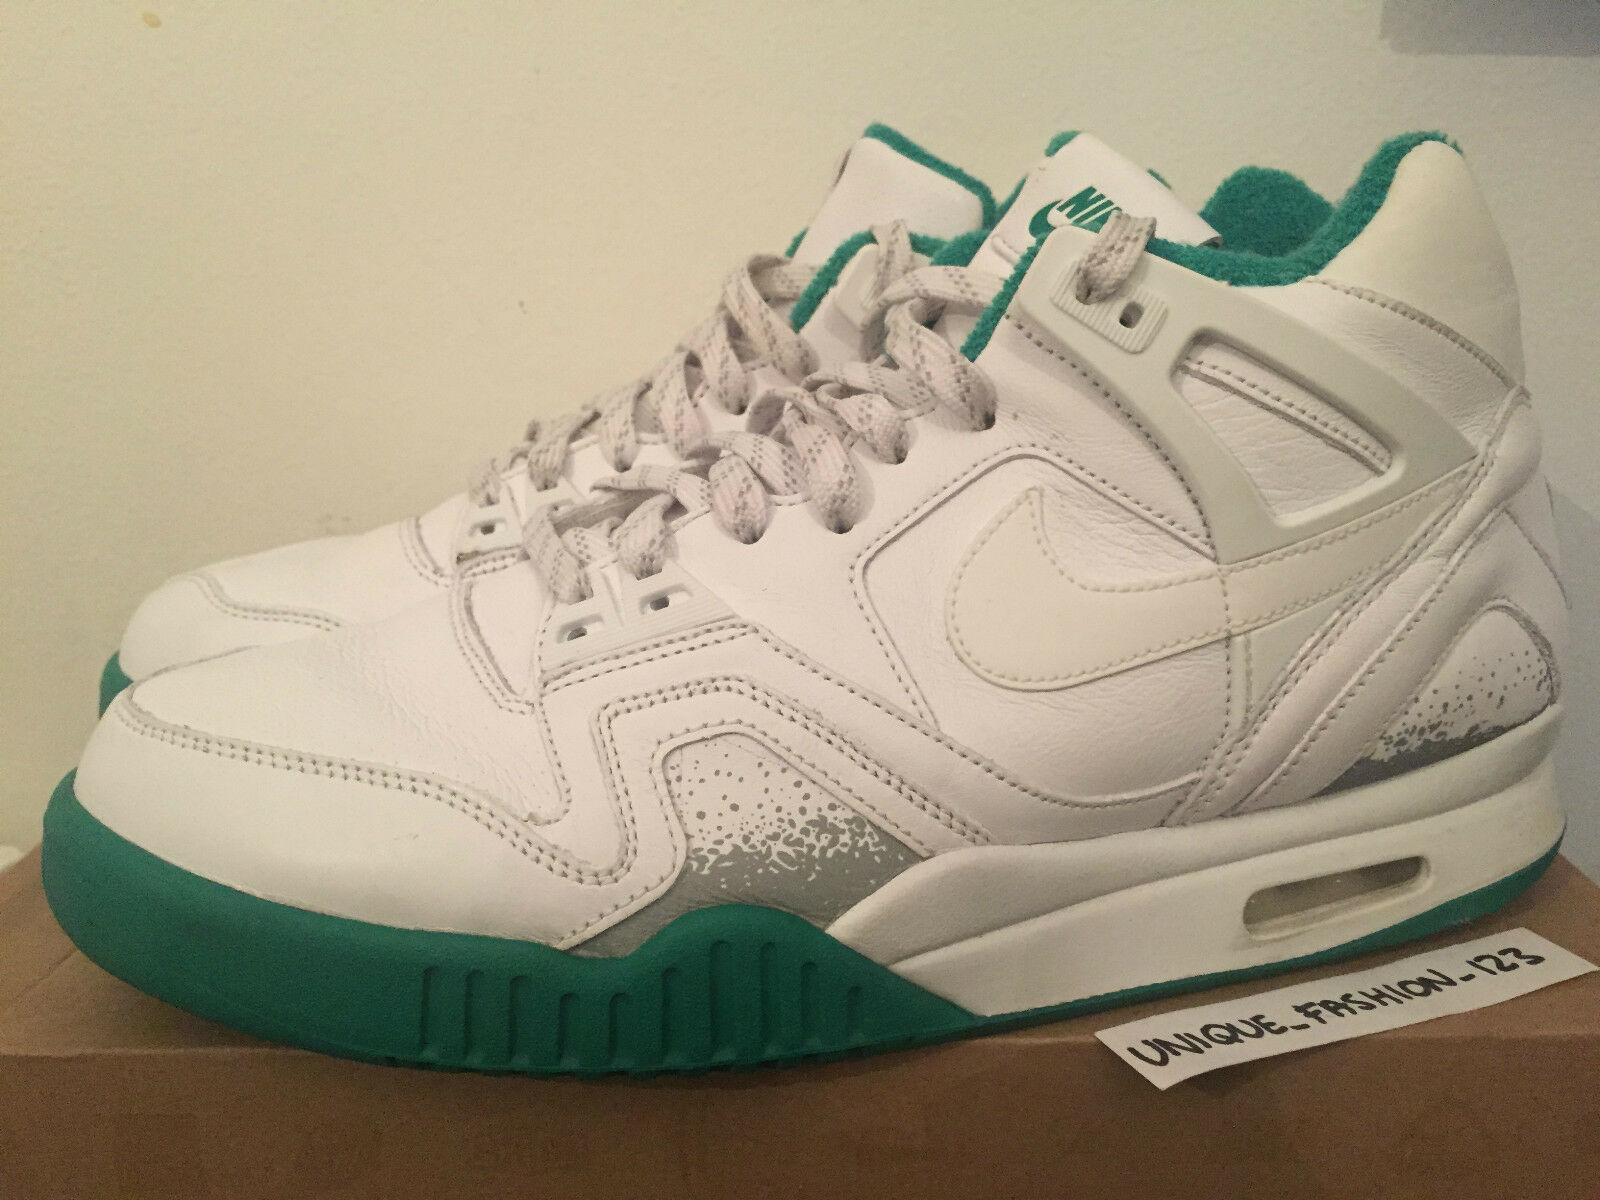 NIKE AIR TECH CHALLENGE 2 WIMBLEDON US 11 OPEN SP AGASSI  WHITE GREEN